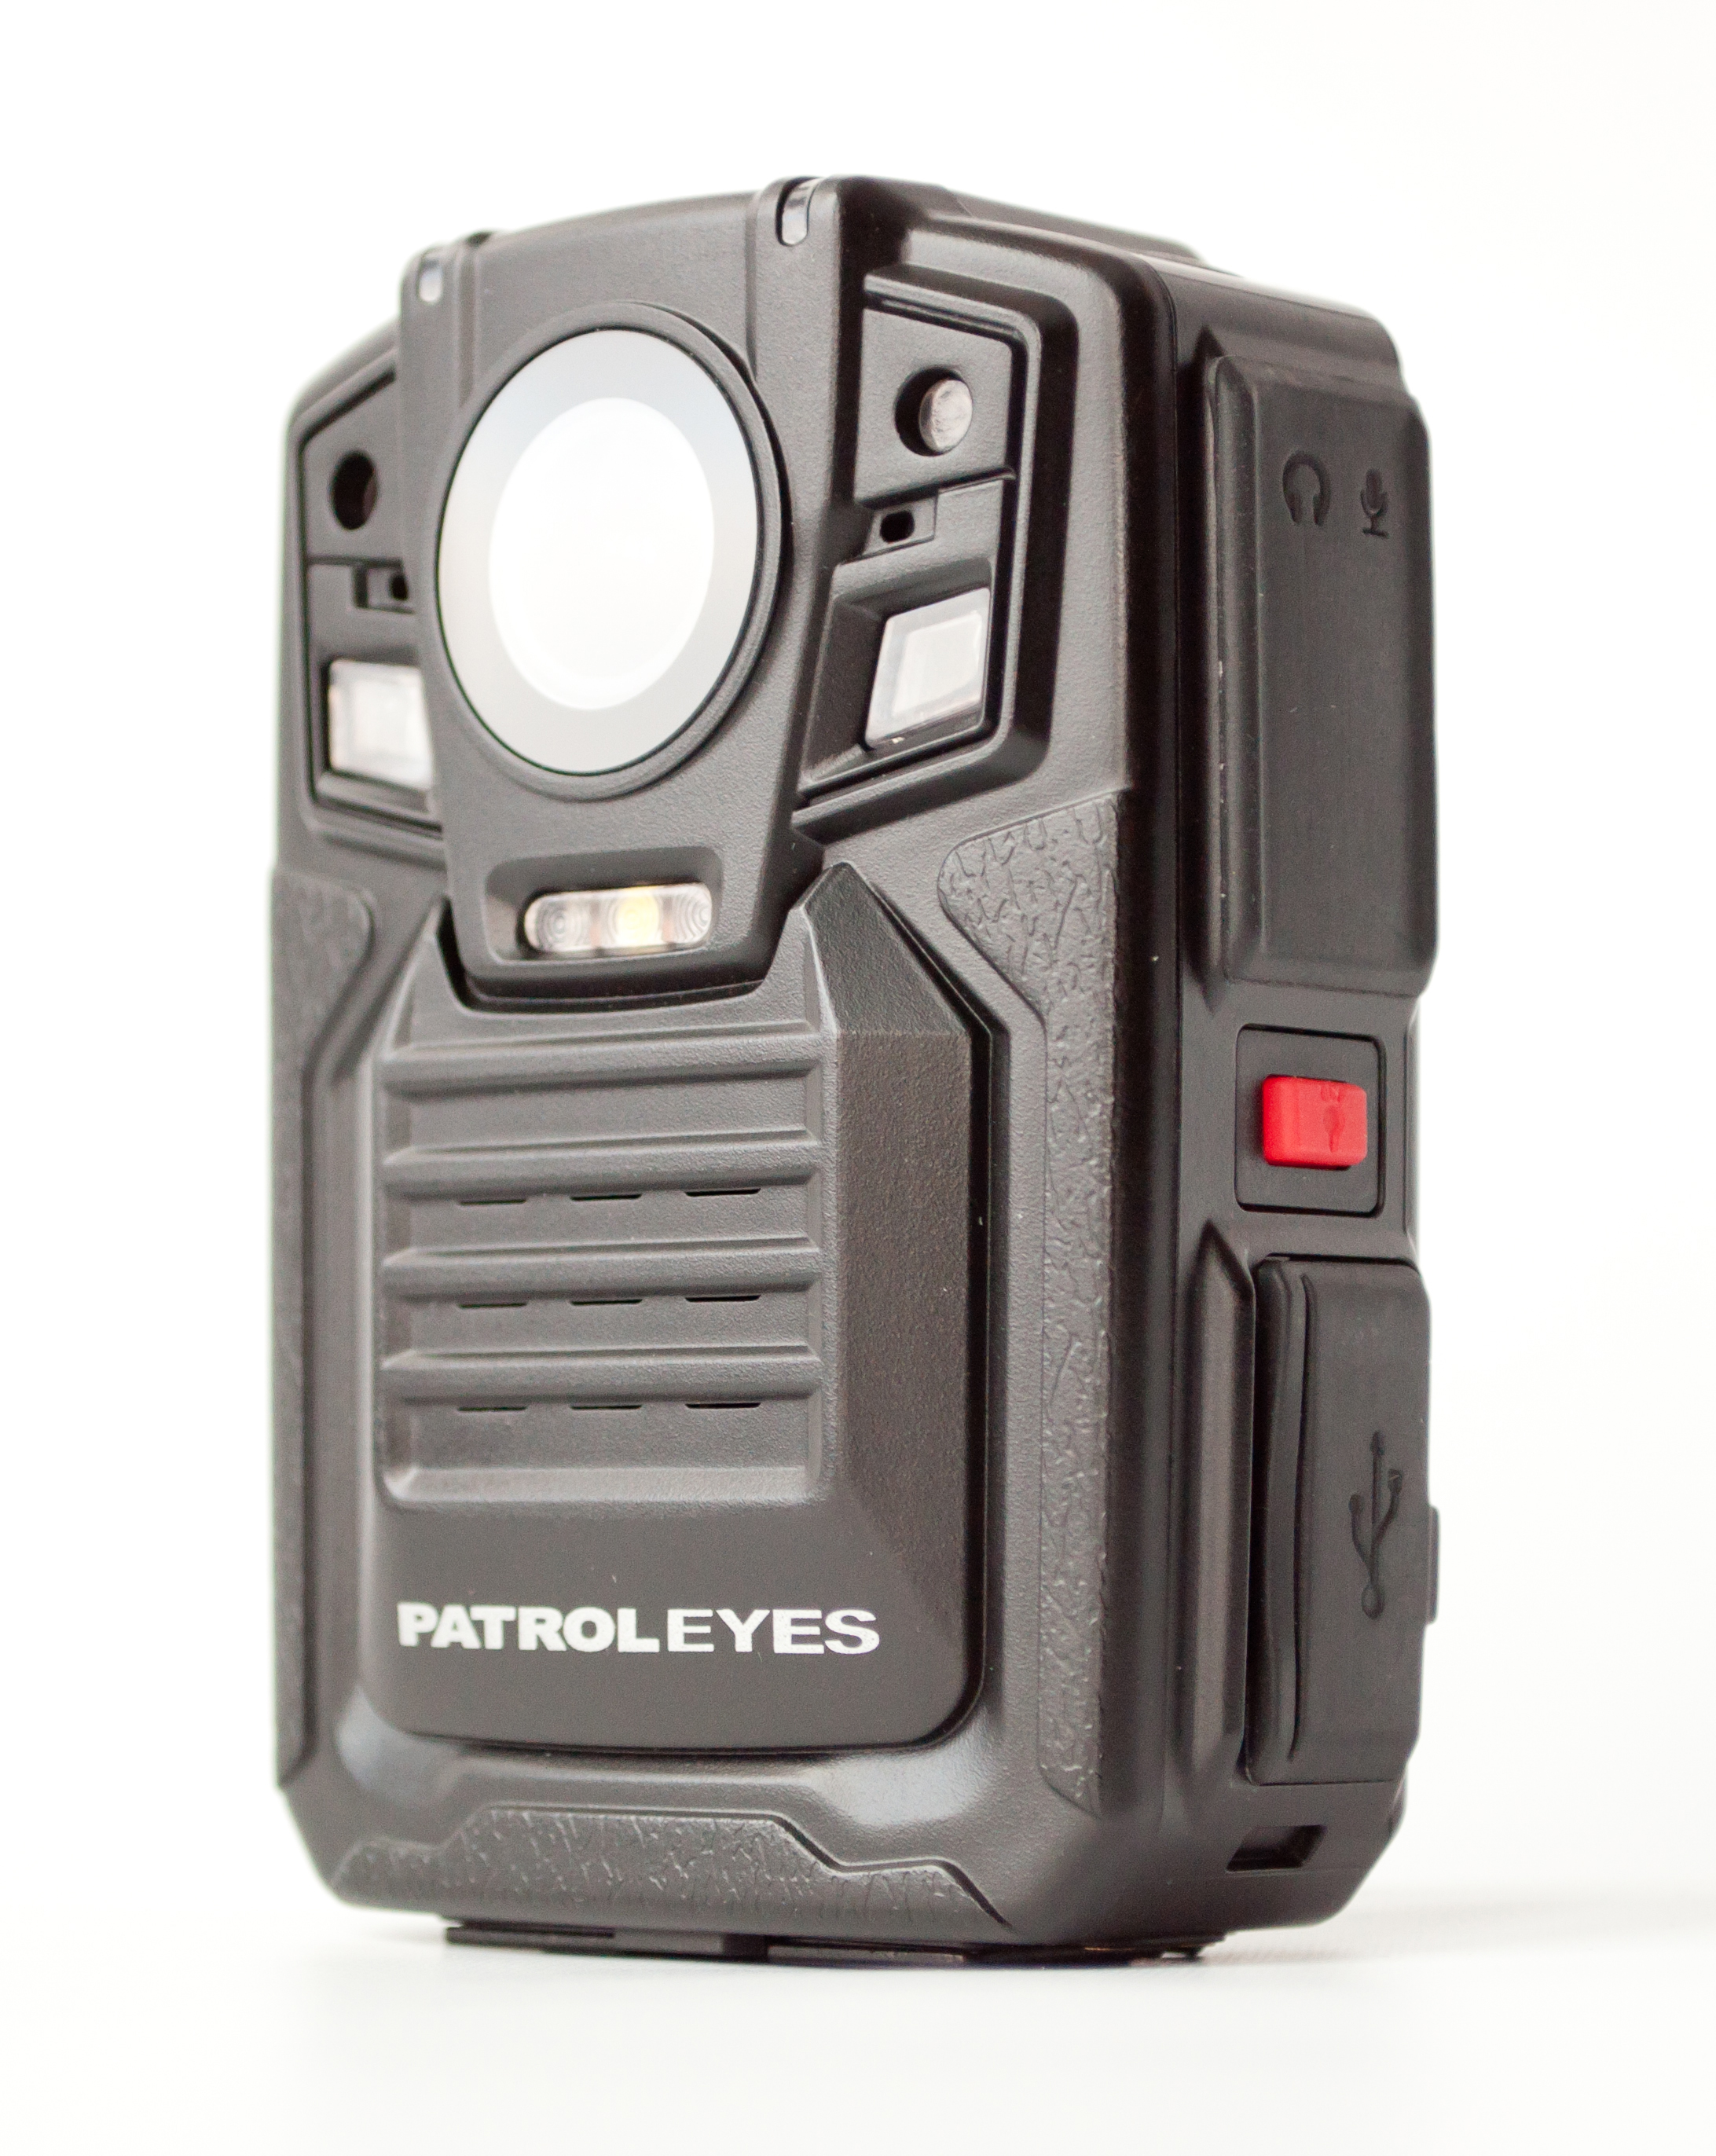 PatrolEyes 1296P HD GPS Auto IR Police Body Camera DV5 2